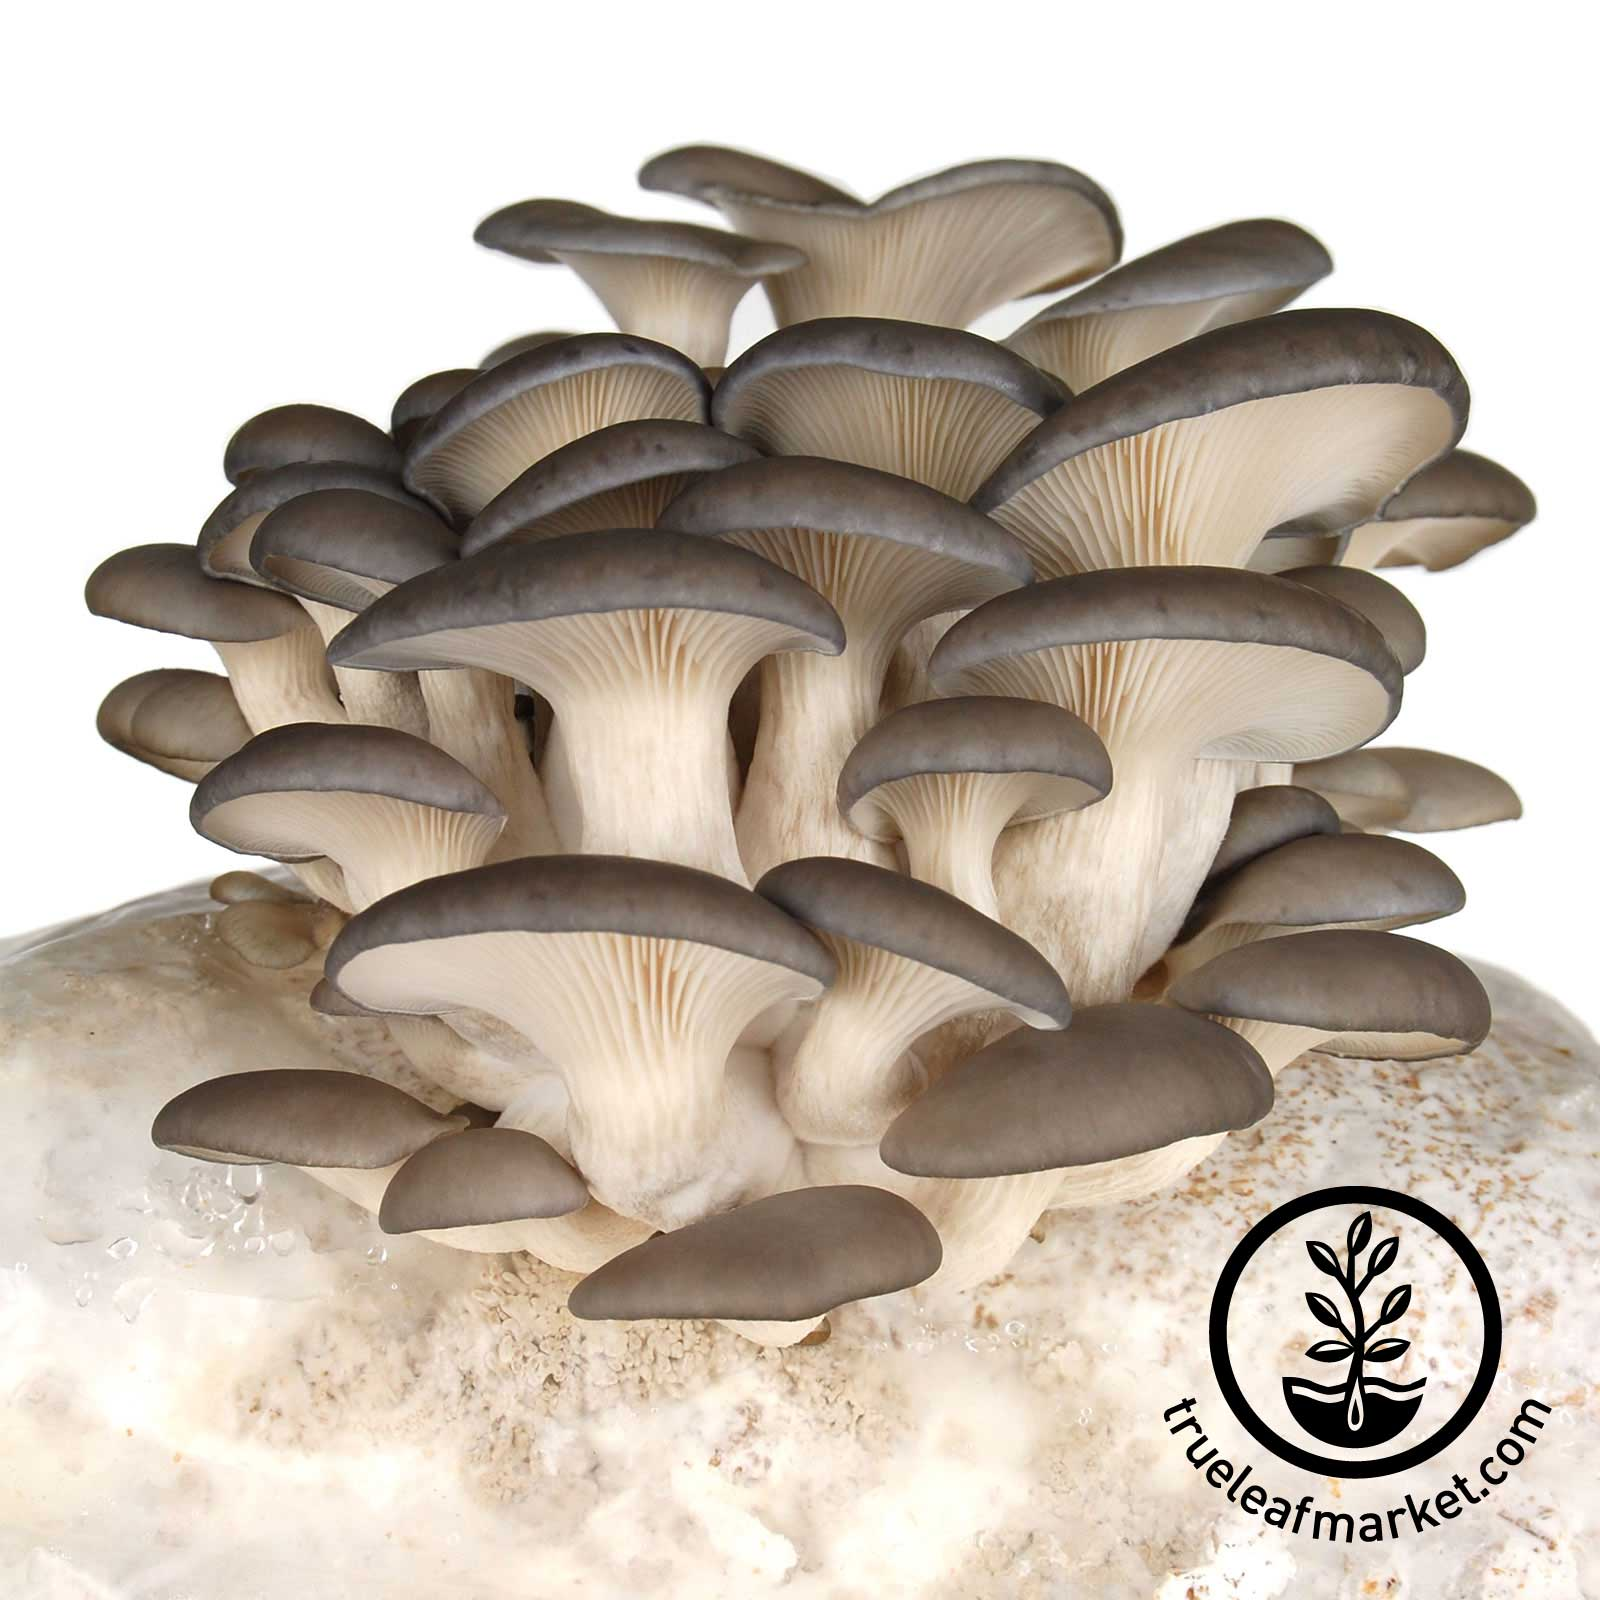 Grey Oyster Mushrooms Ready to Harvest